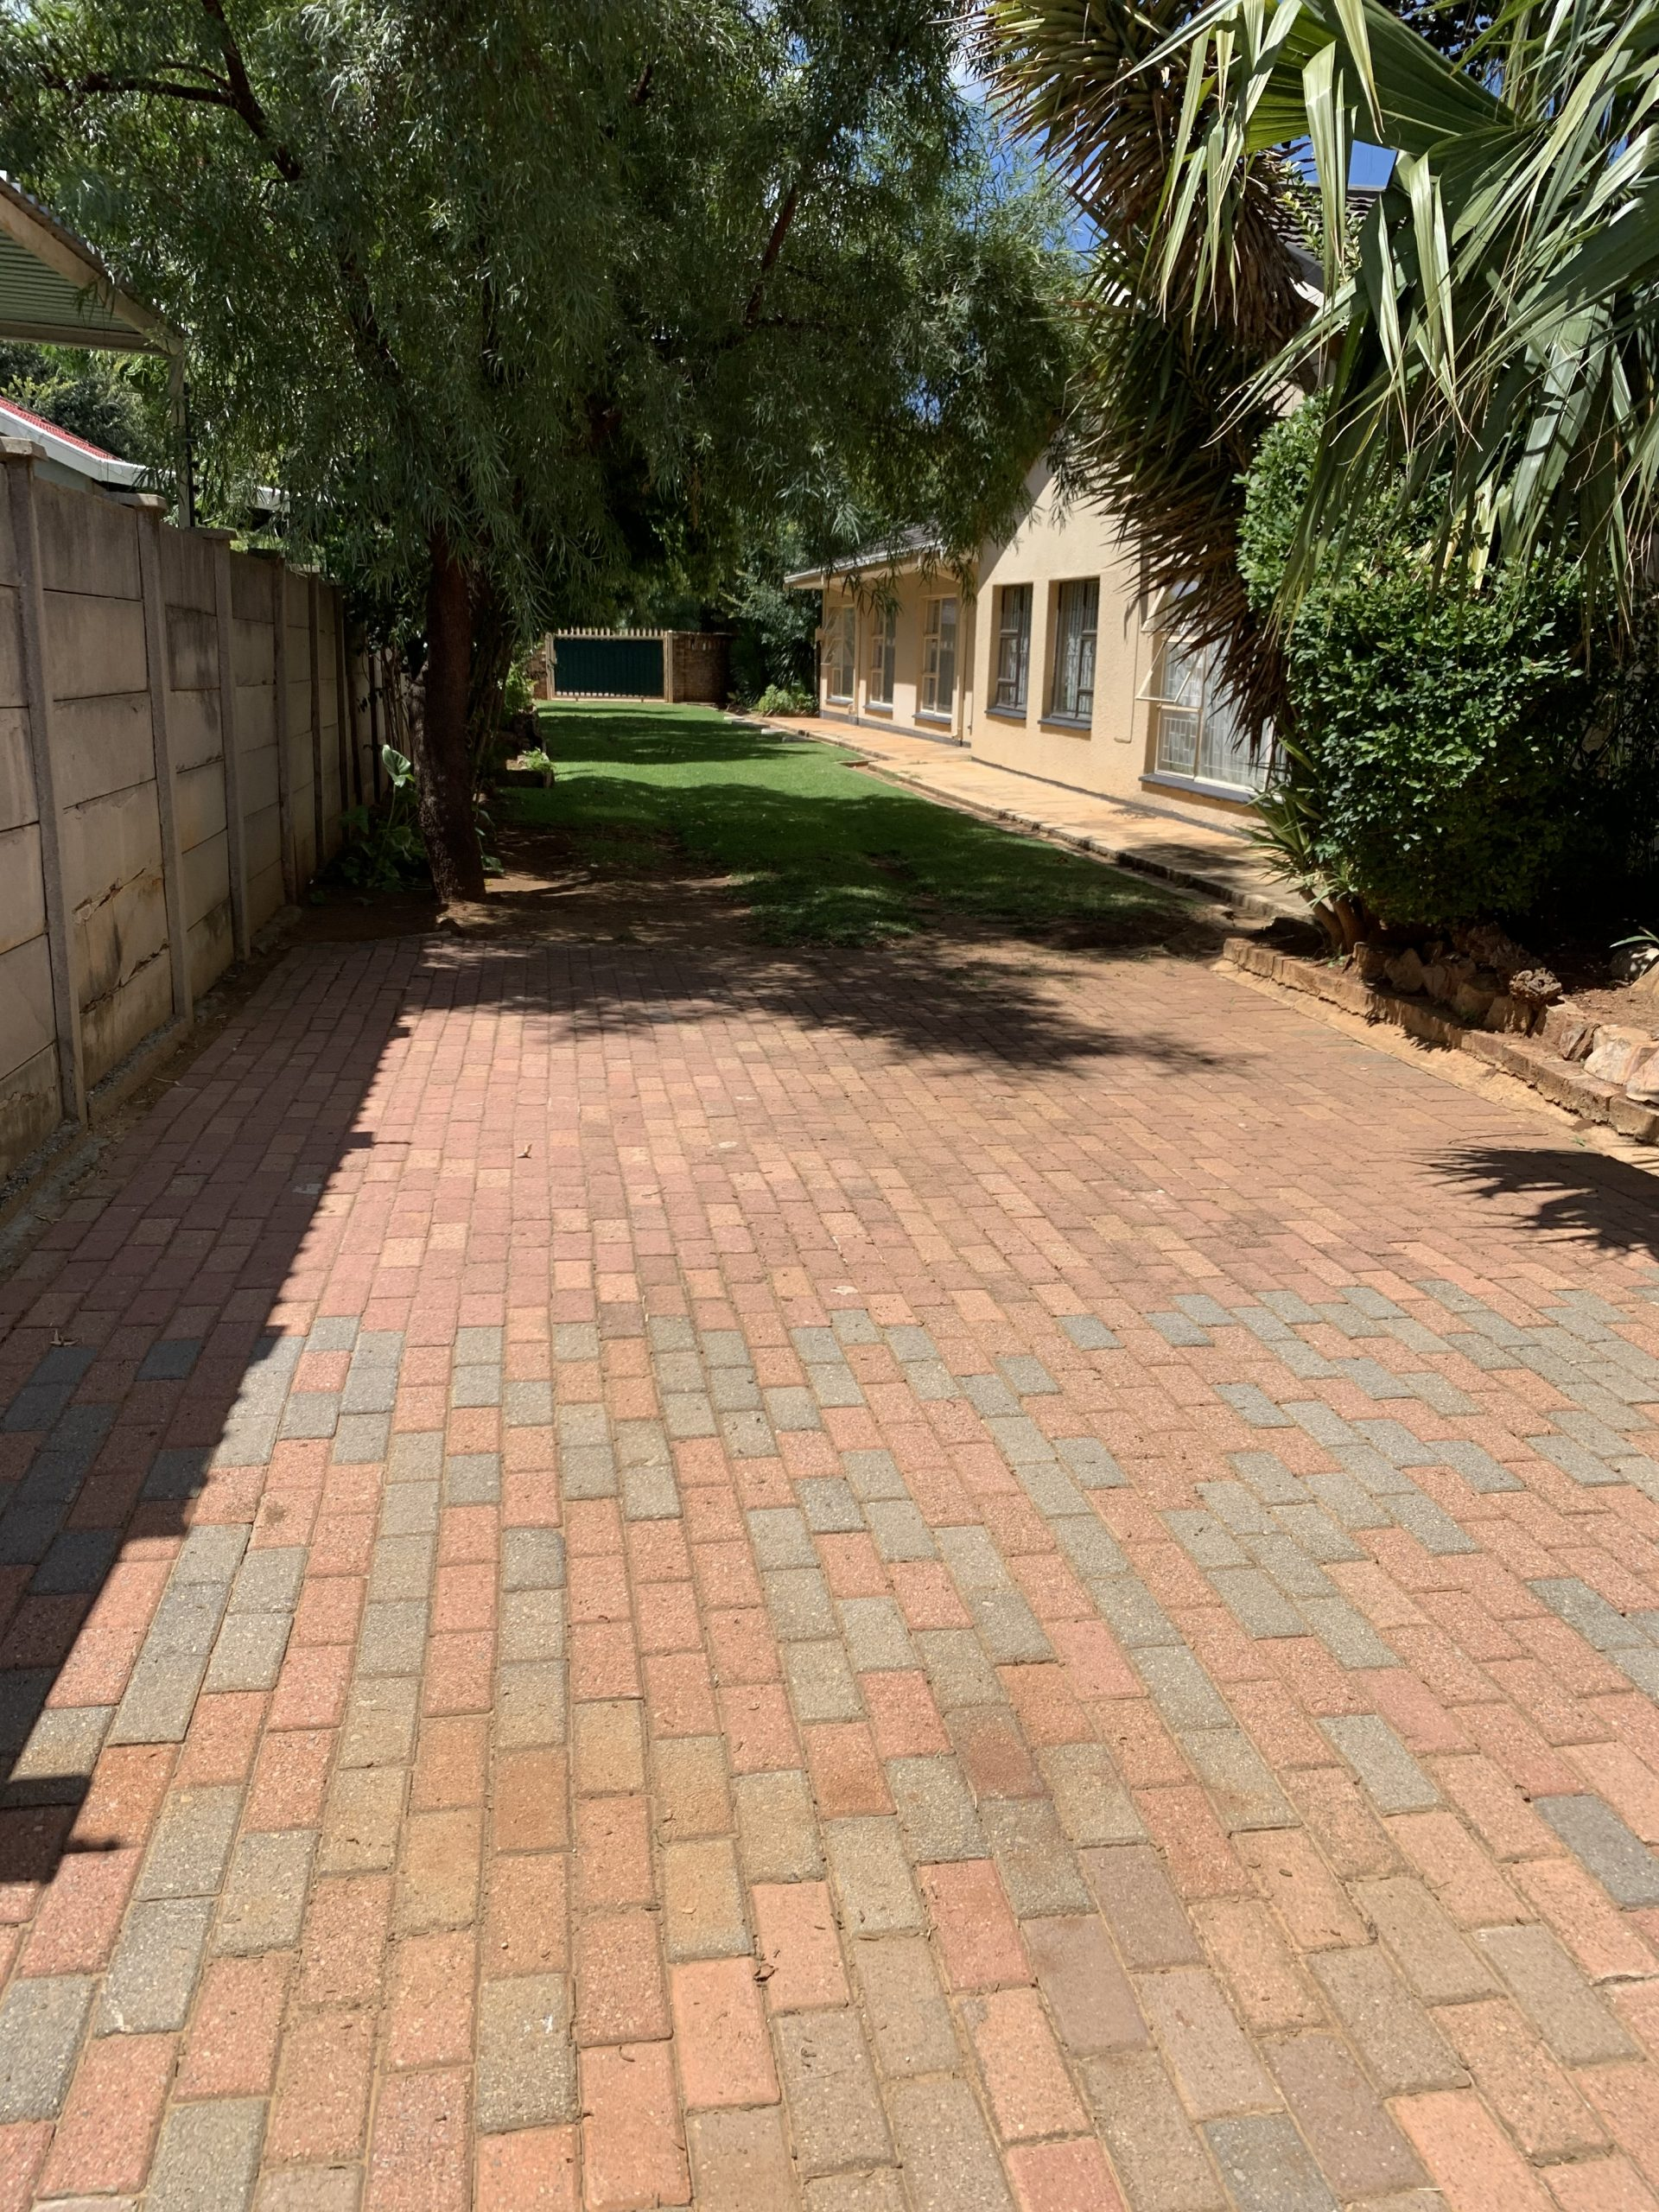 4 Bedroom House with Flatlet for SALE